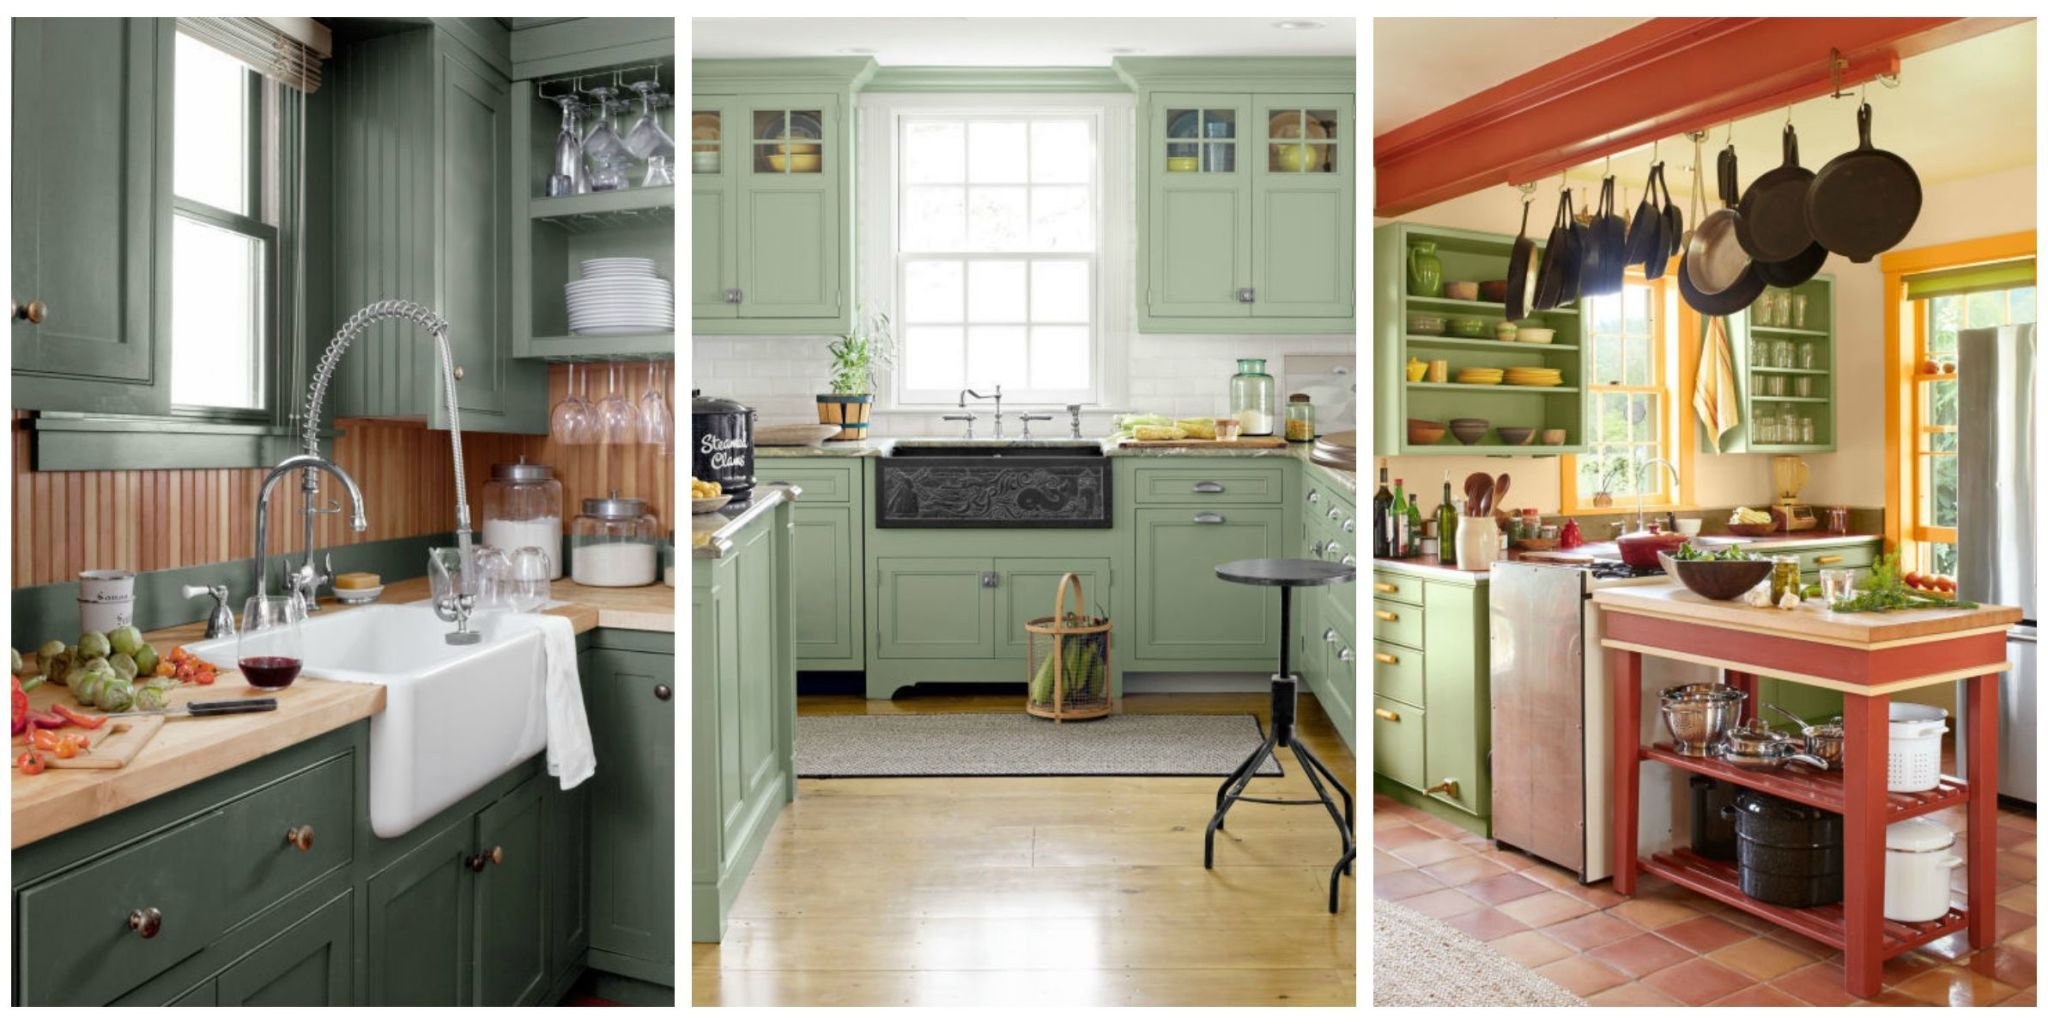 With paint options ranging from mint to sage these green kitchen ideas will make any cooking ... & 10 Green Kitchen Ideas - Best Green Paint Colors for Kitchens